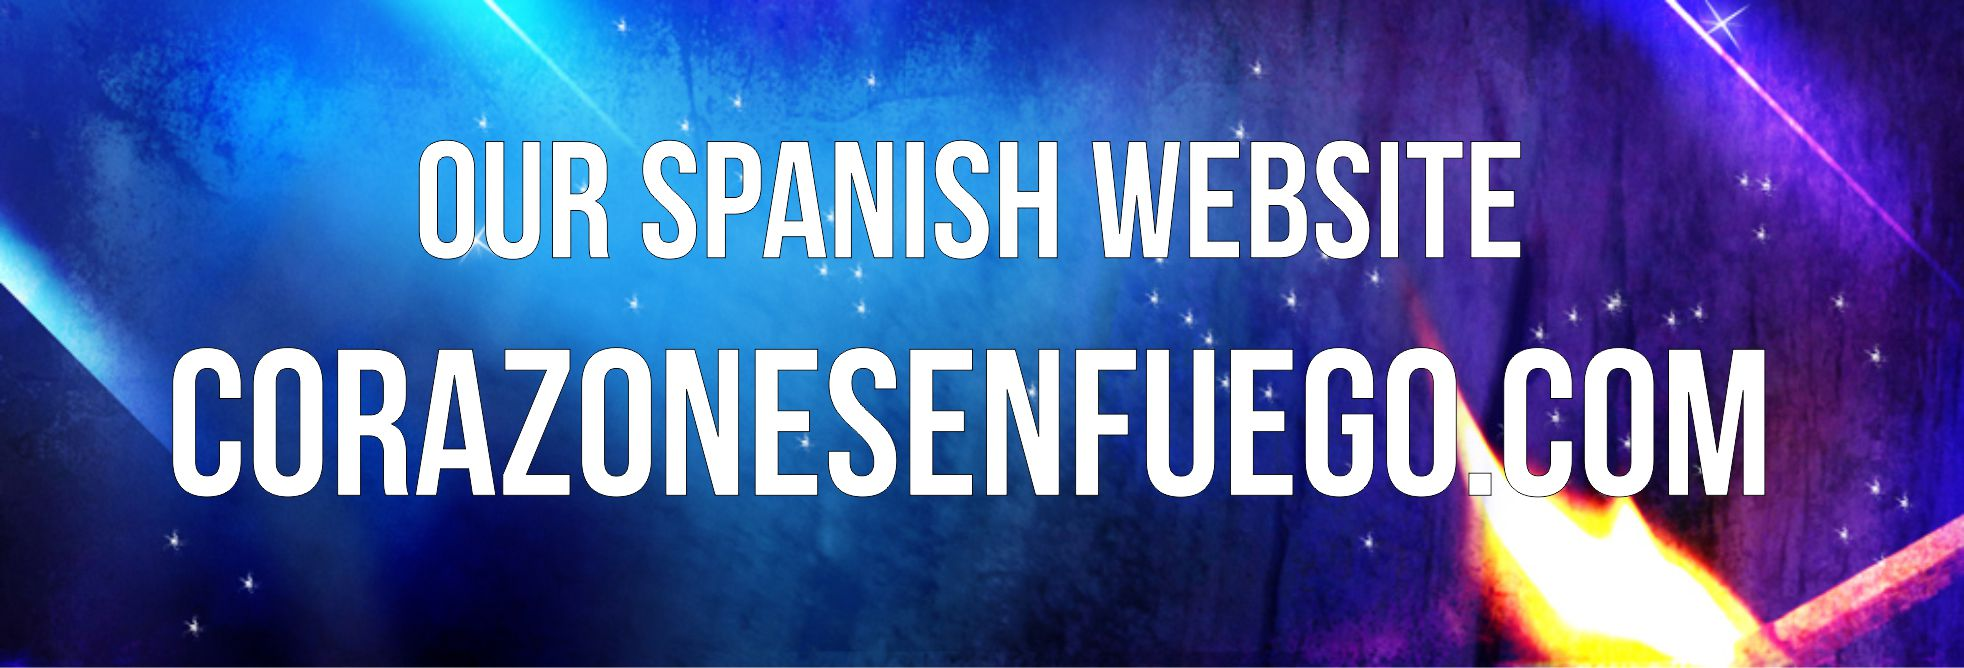 Spanish Web Site